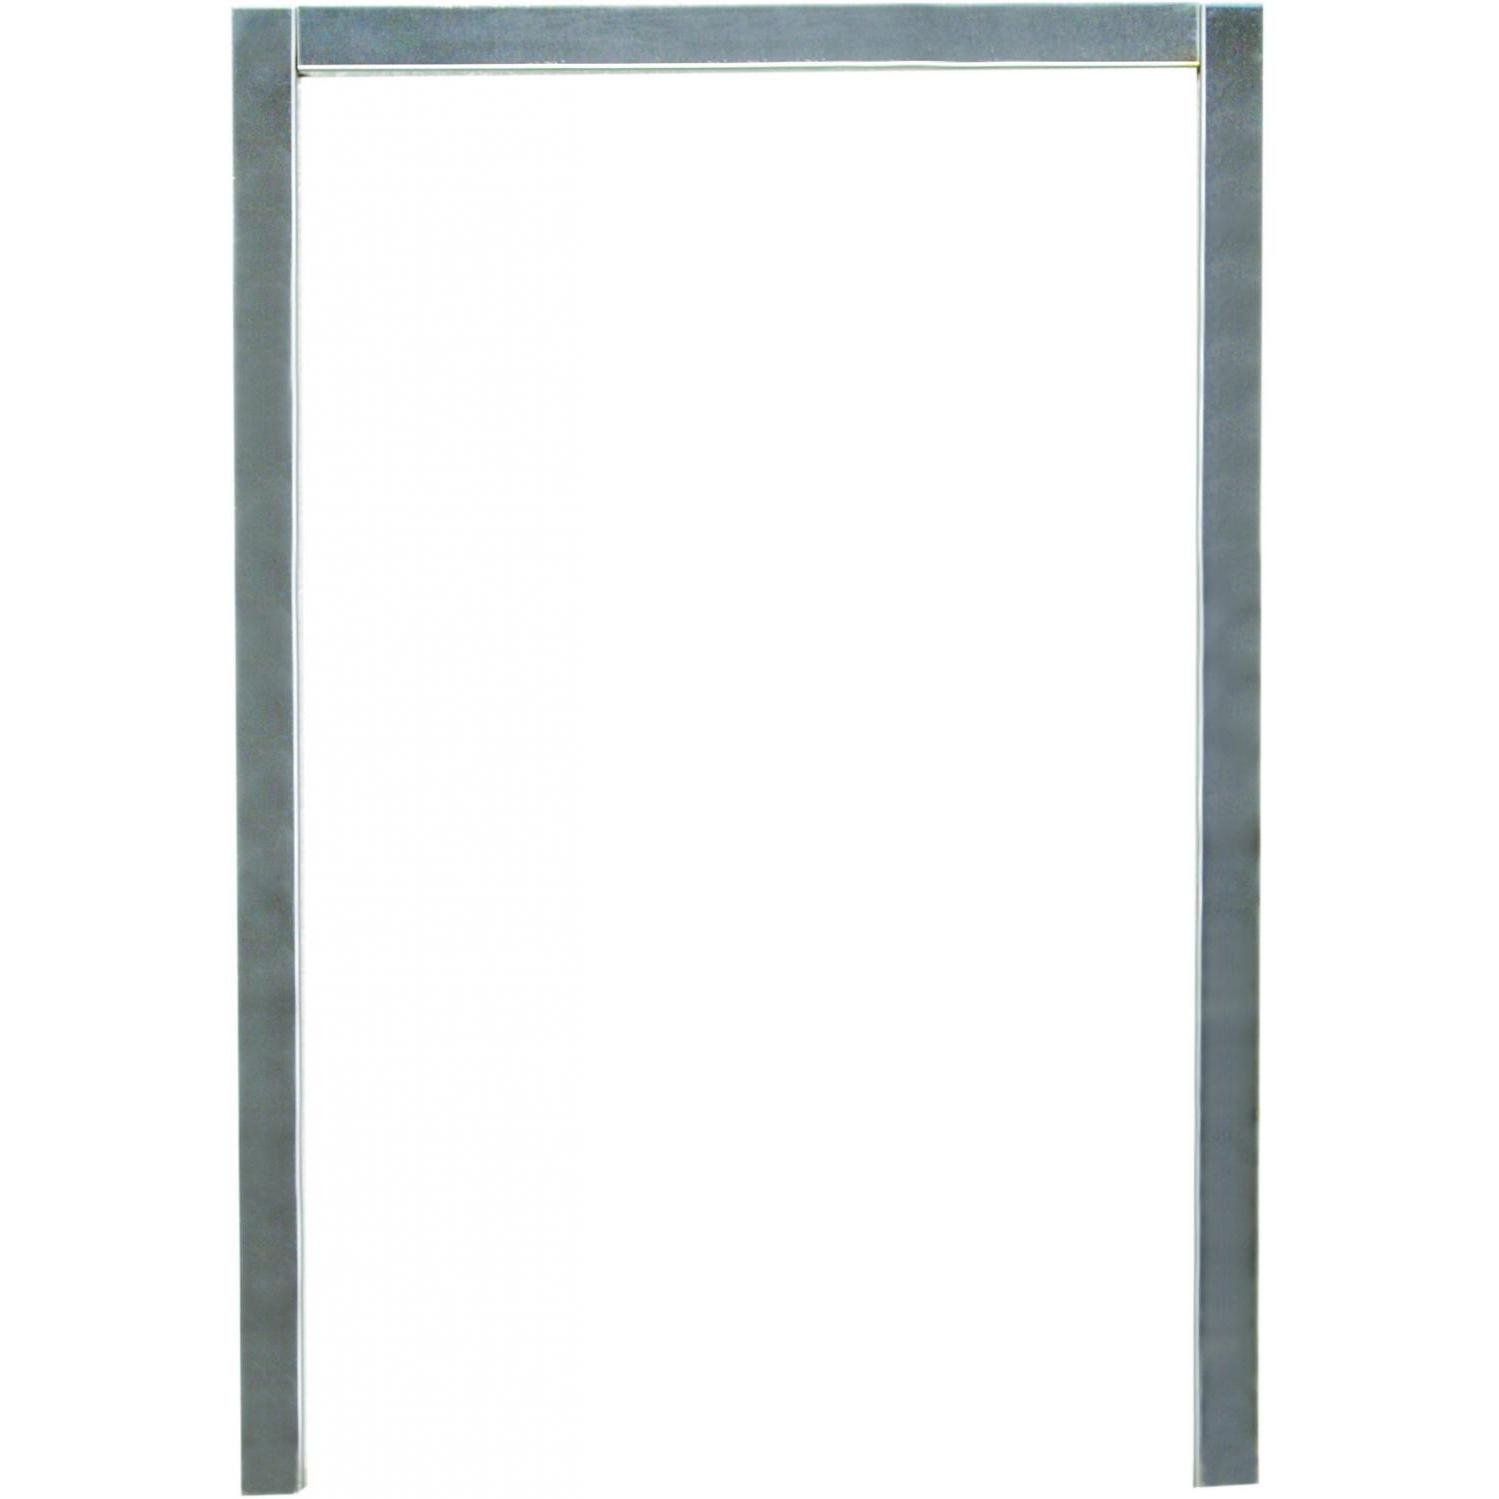 Lion Stainless Steel Outdoor Compact Refrigerator Frame : BBQ Guys